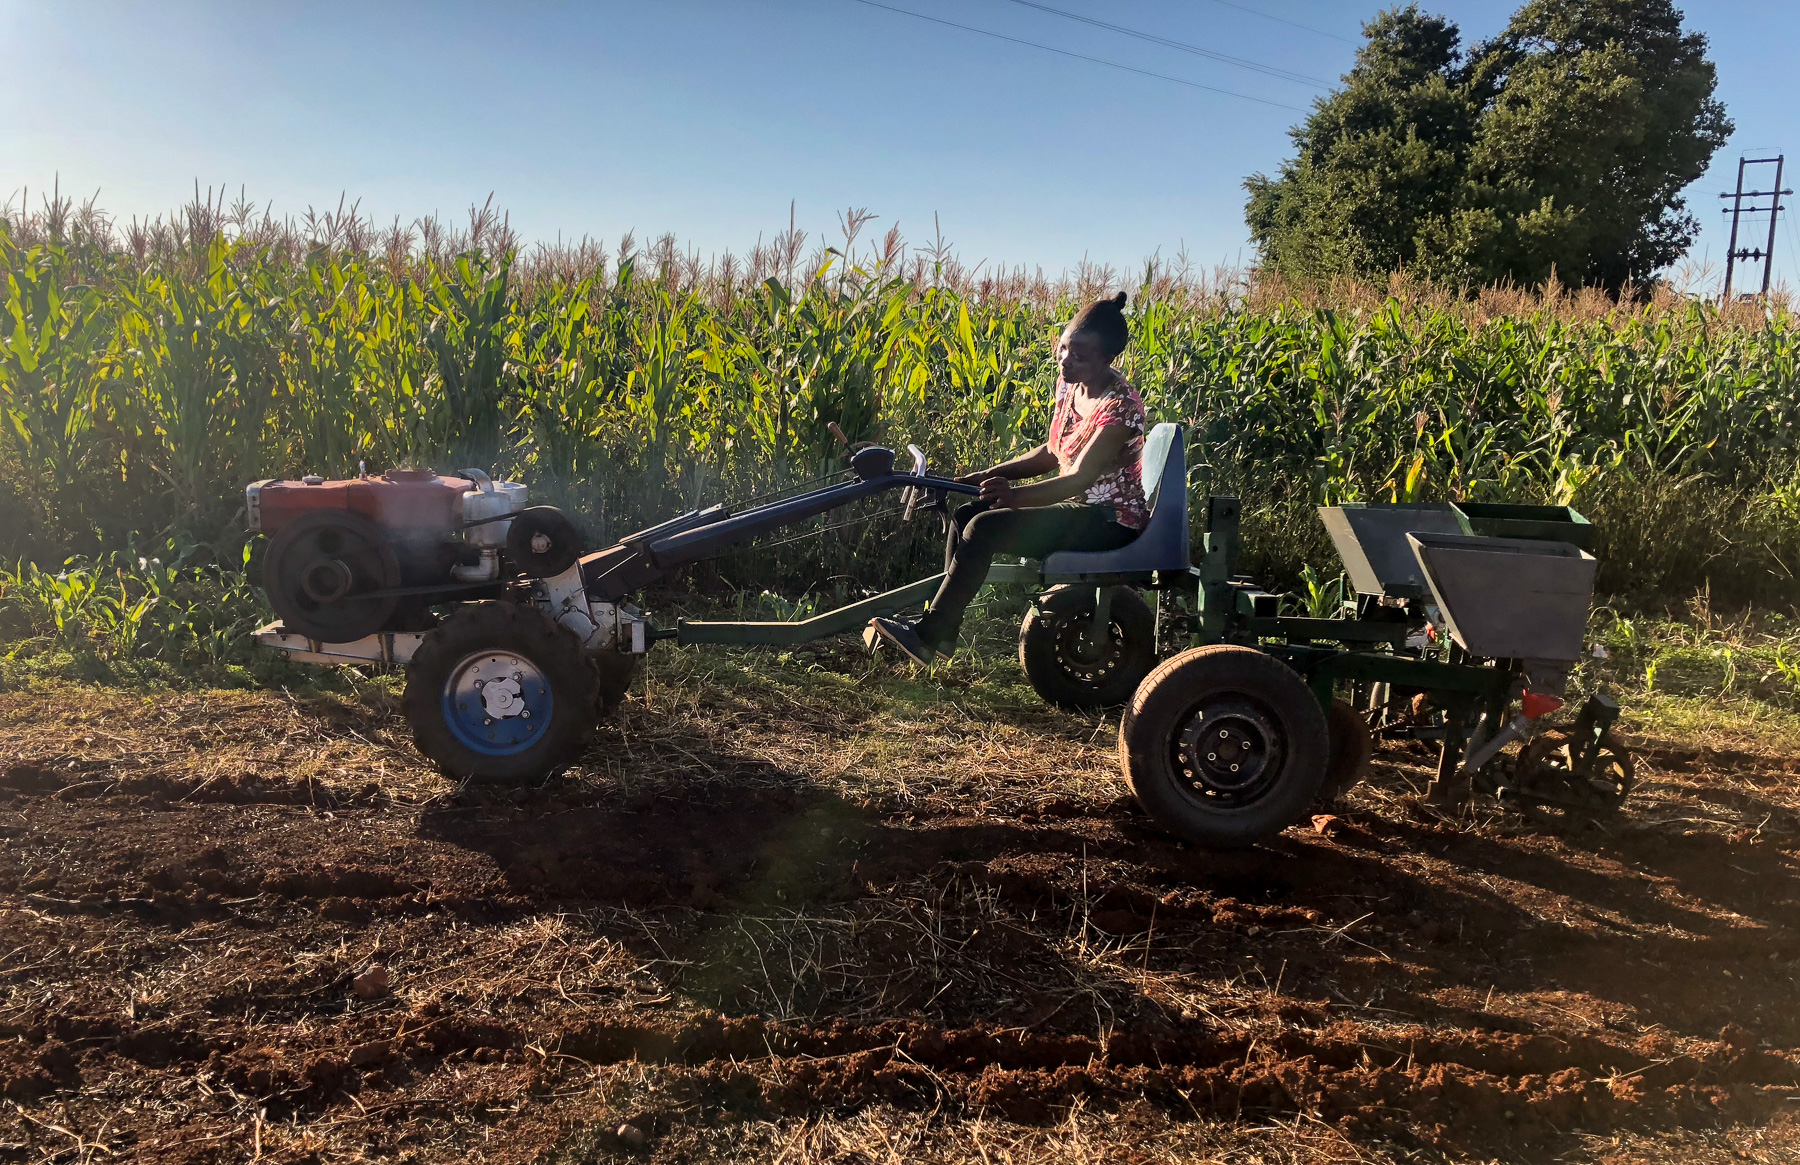 With support from CIMMYT, students at the University of Zimbabwe are working to develop agricultural machinery fitted to the environmental conditions and needs of farmers in their country and other parts of Africa. (Photo: Matthew O'Leary/CIMMYT)